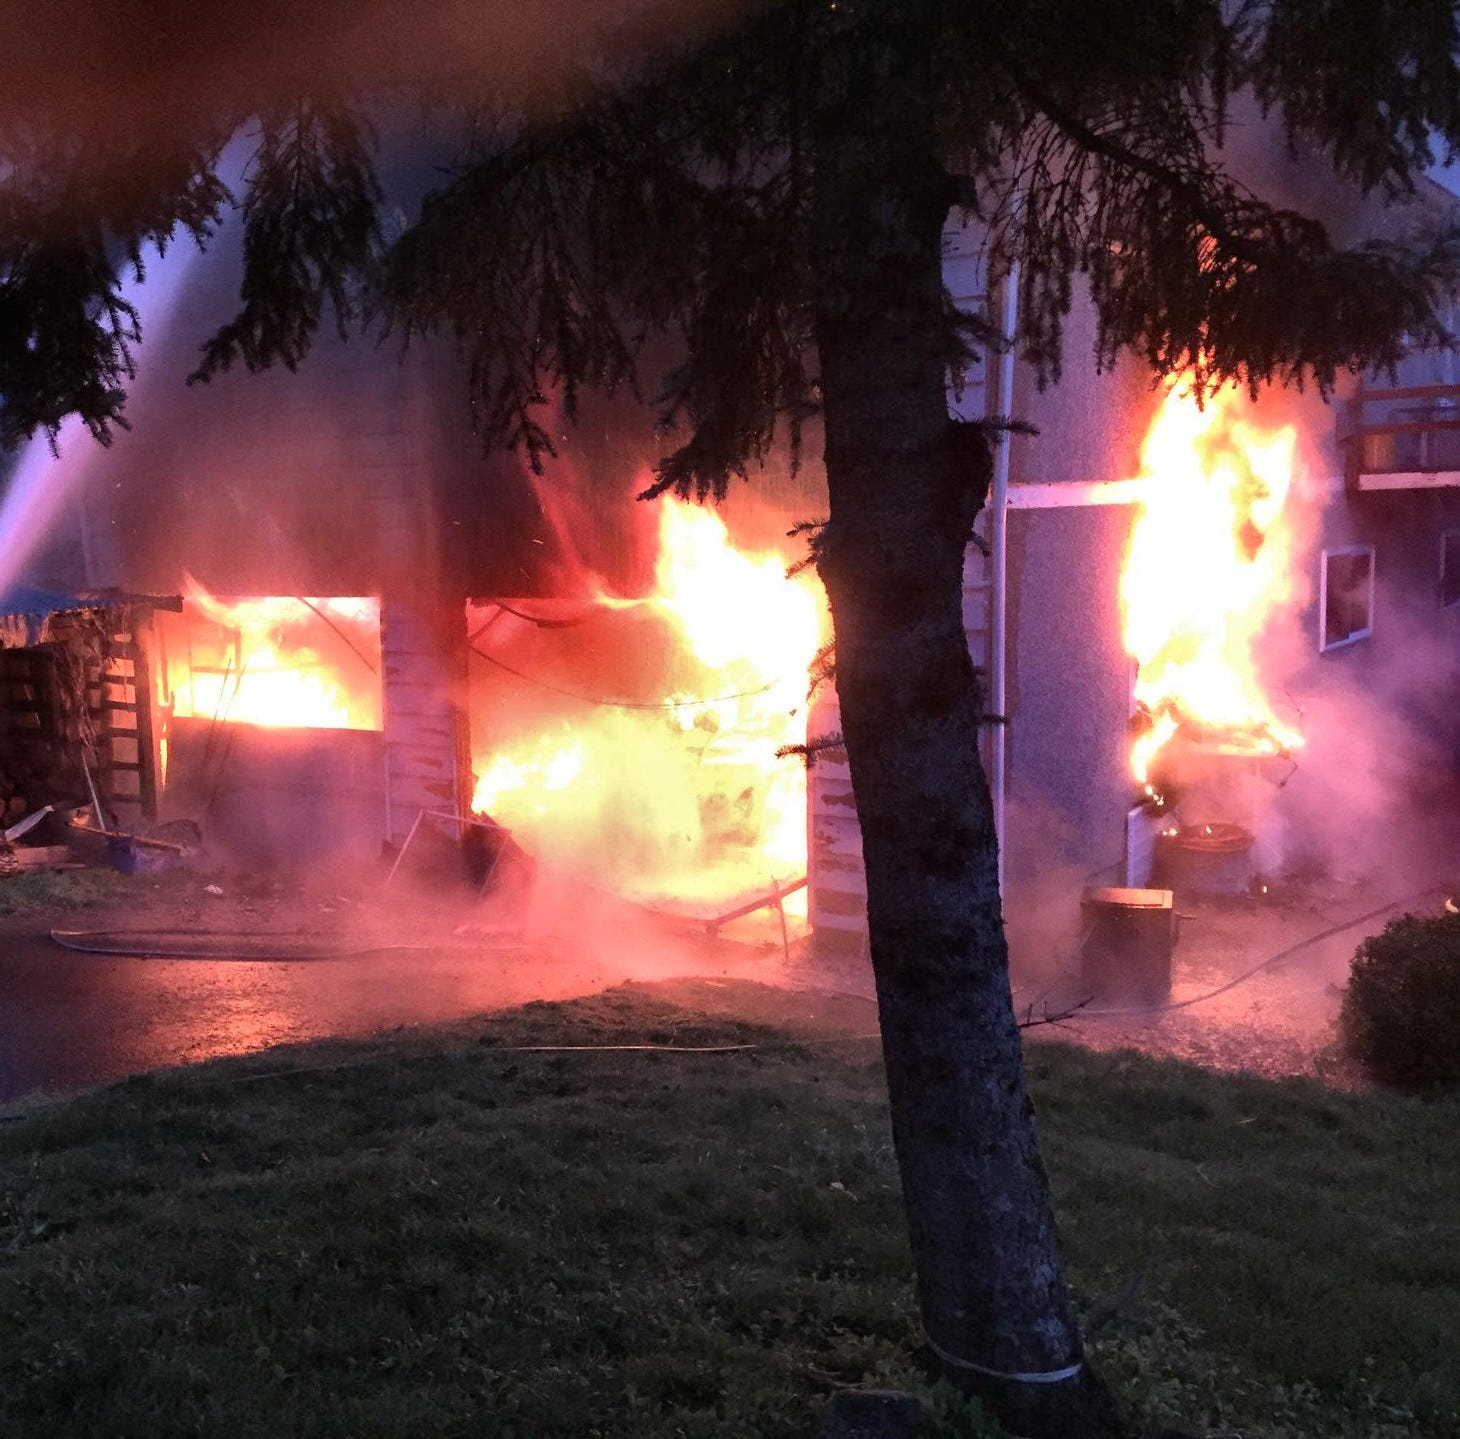 Four residents escape 2-alarm house fire in Macleay area